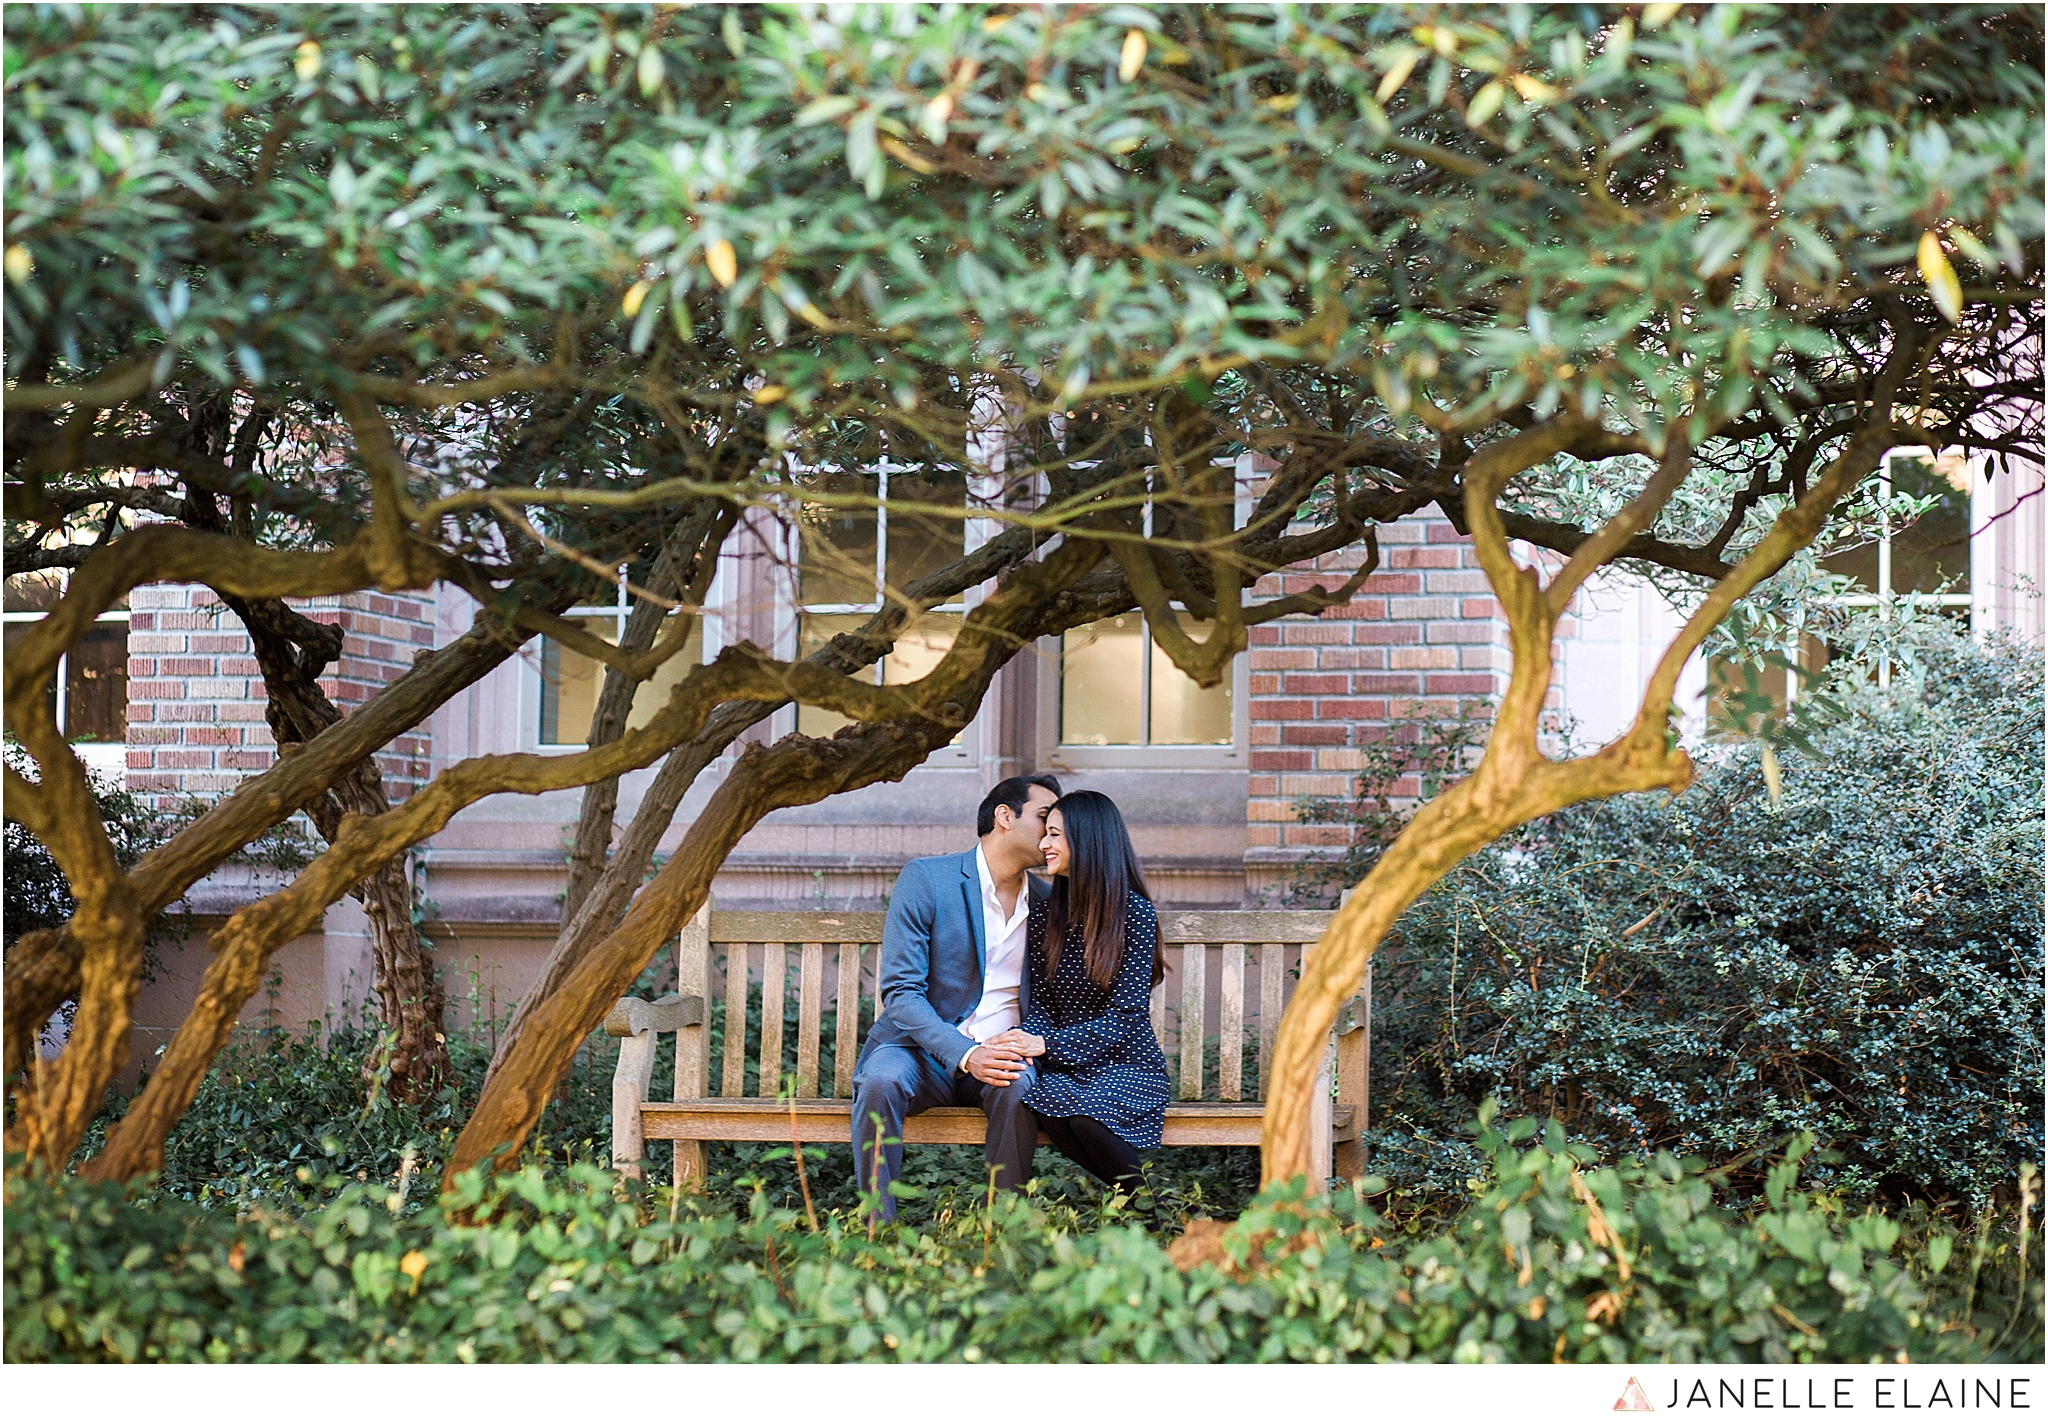 janelle elaine photography-zain and umema-seattle-uw-red square-engagement-photographer-109.jpg